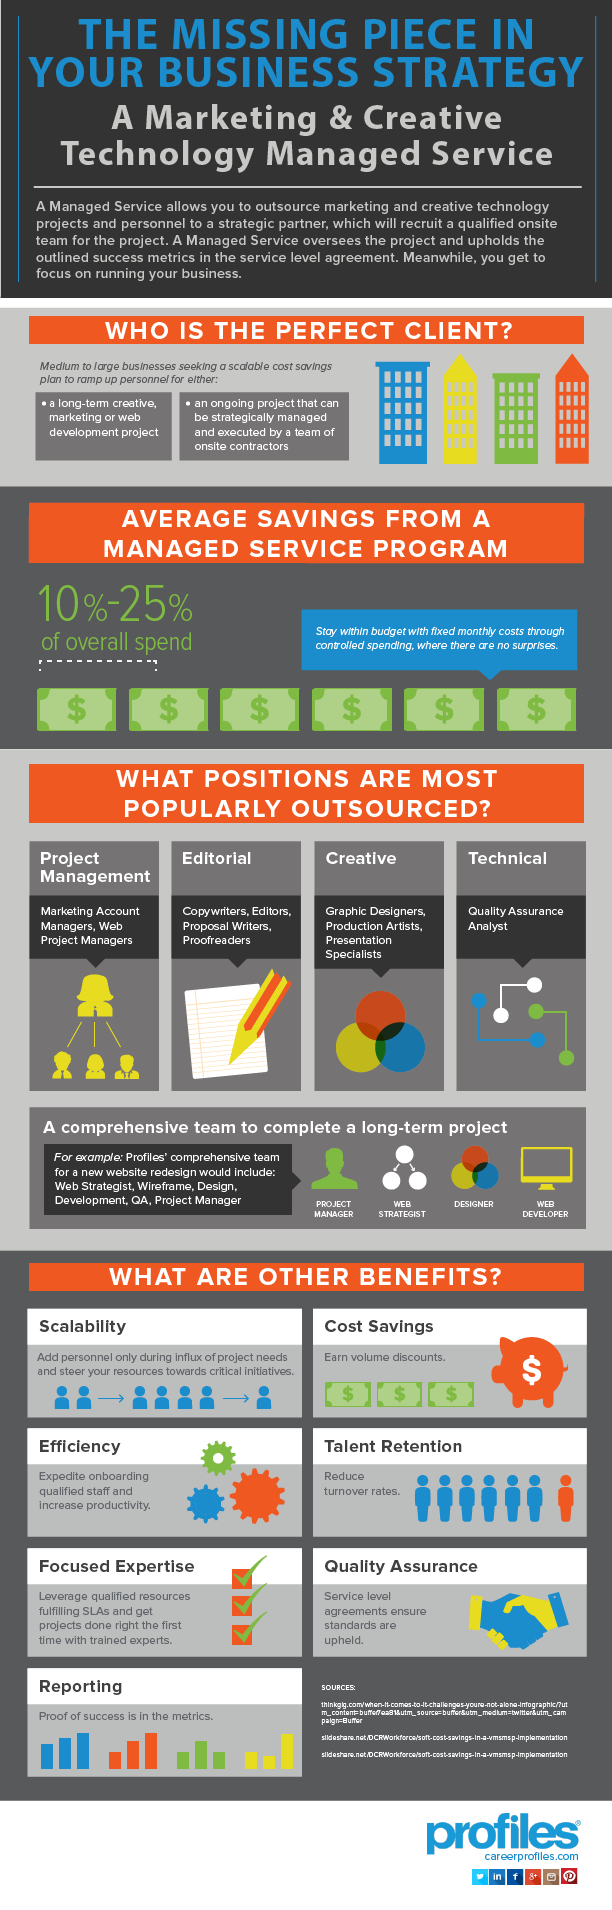 Profiles Managed Services Infographic